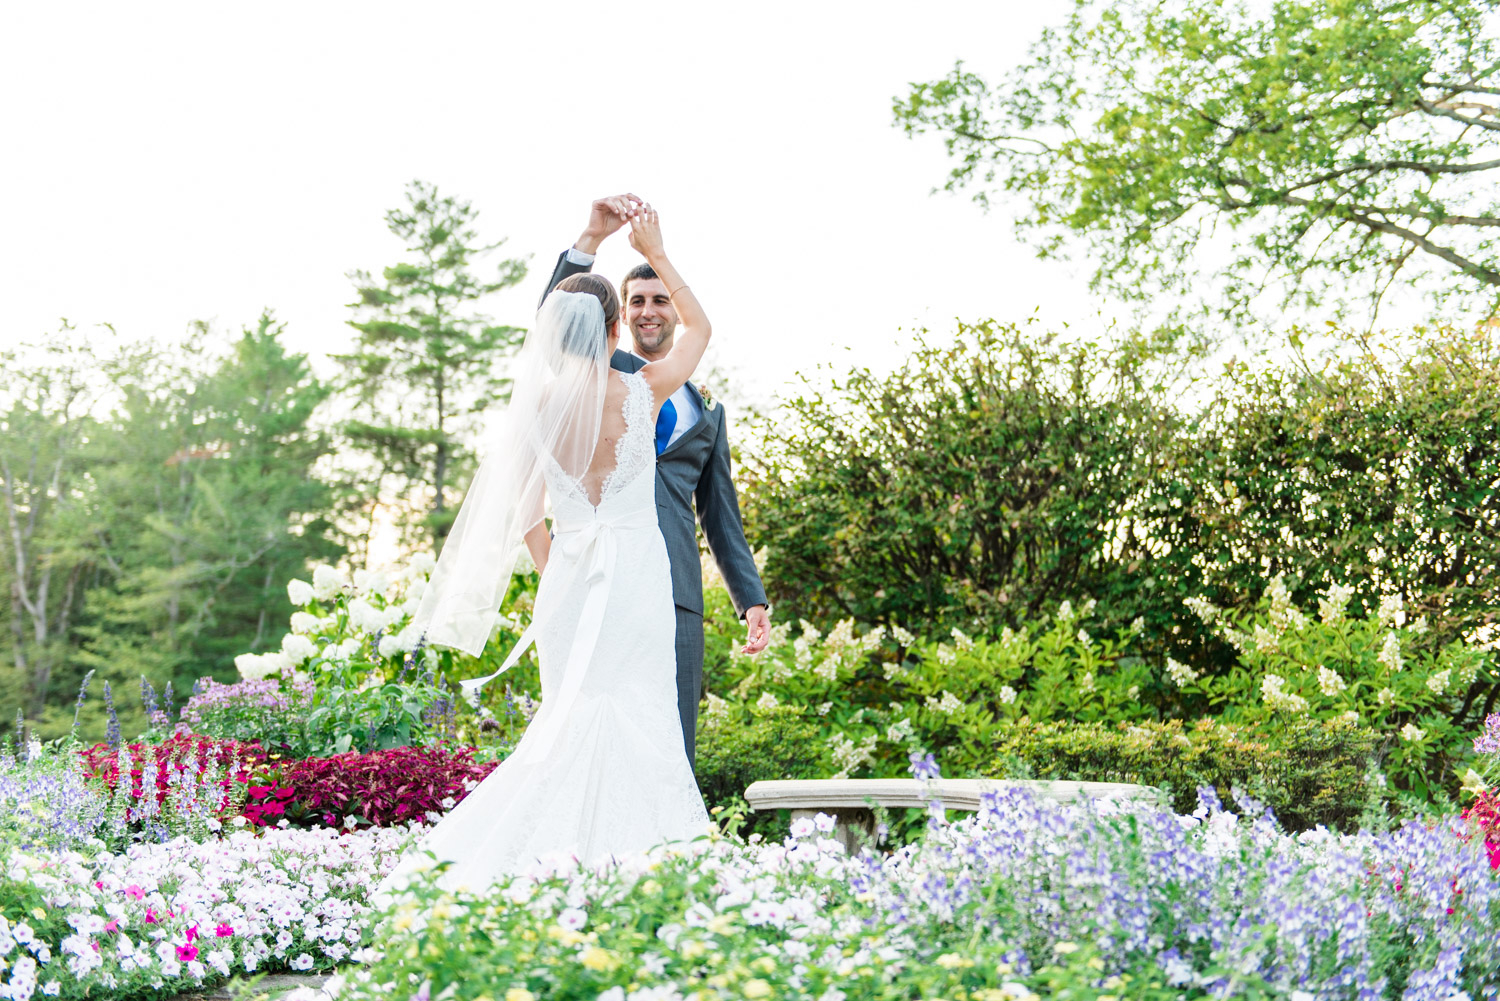 Why You Need Self-Care To Have The Wedding Day Of Your Dreams | Lorna Stell Photo | Boston MA